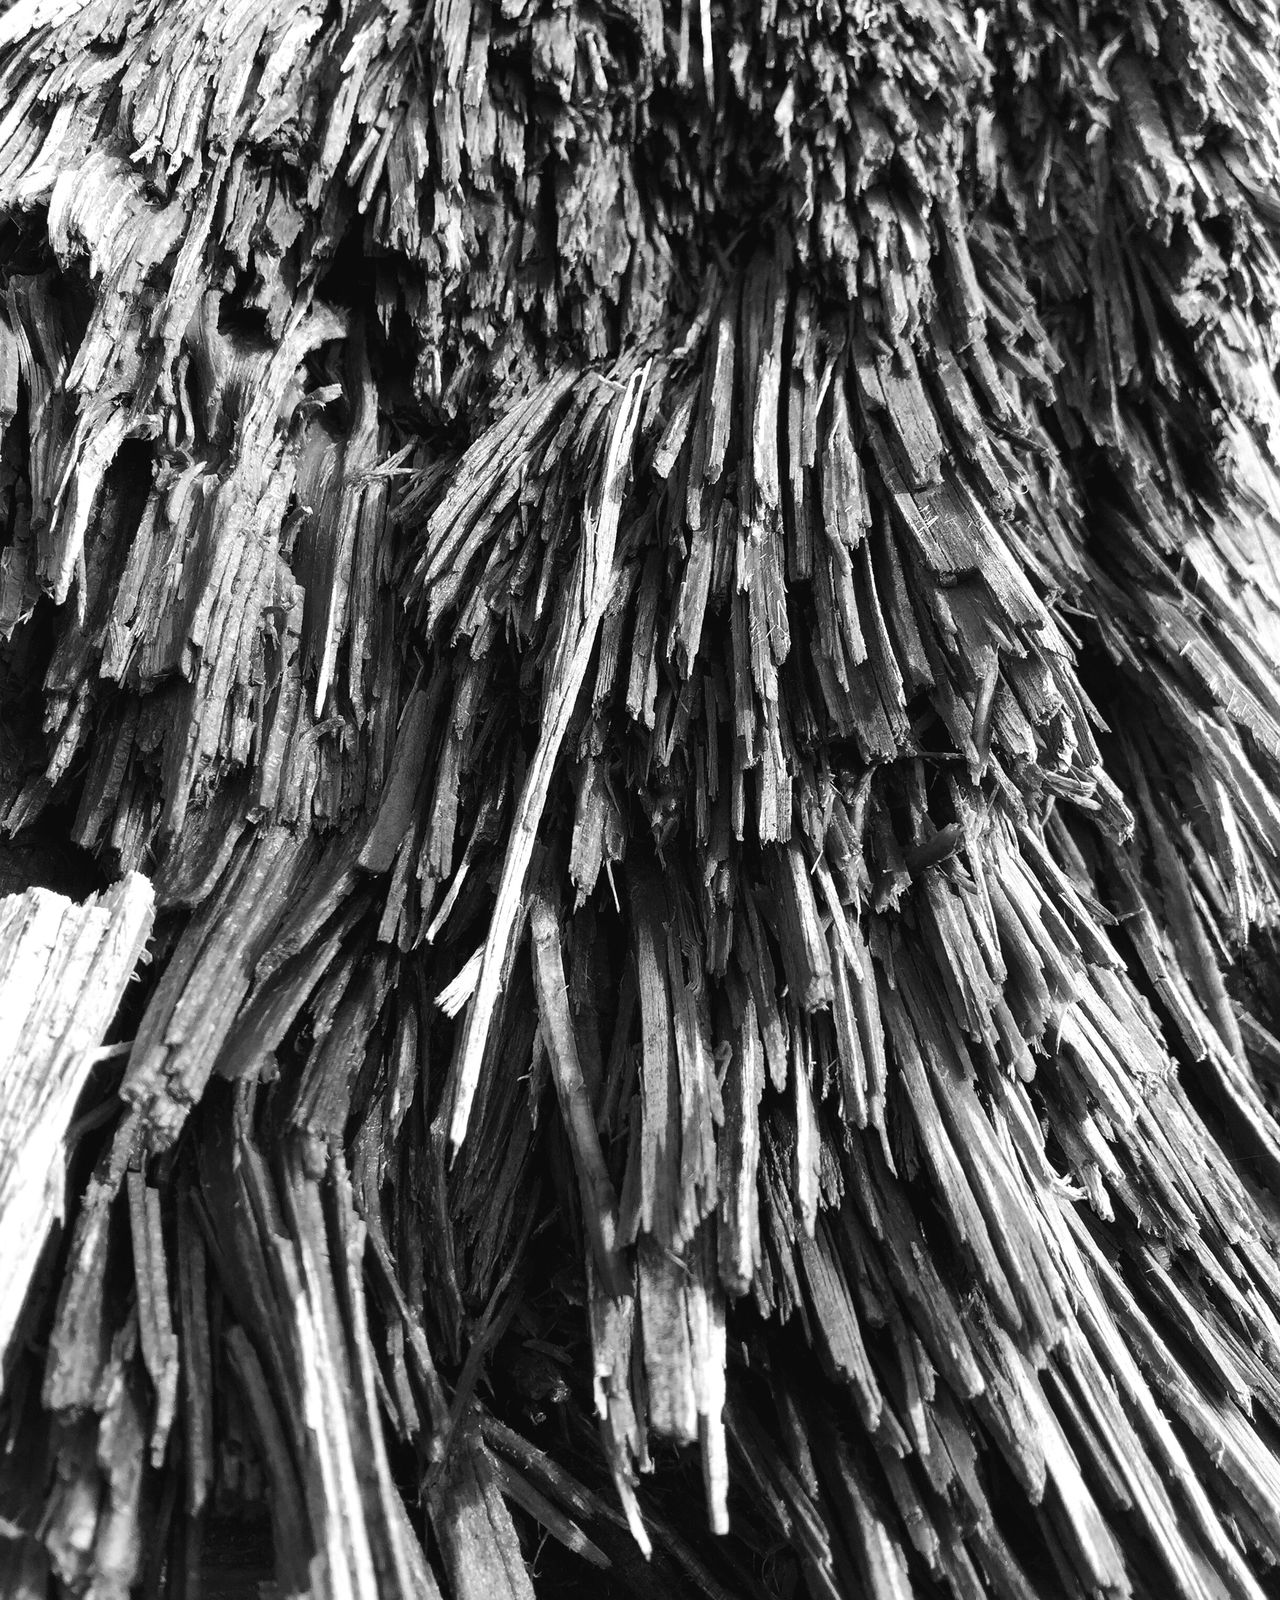 Abstract Nature Textured  Full Frame Close-up Backgrounds Nature Outdoors Fallen Tree Abstractions Landscape Layers And Textures Natural Collages Shapes And Forms Wood - Material Tree Pattern Complexity Patterns In Nature Textured  Black And White